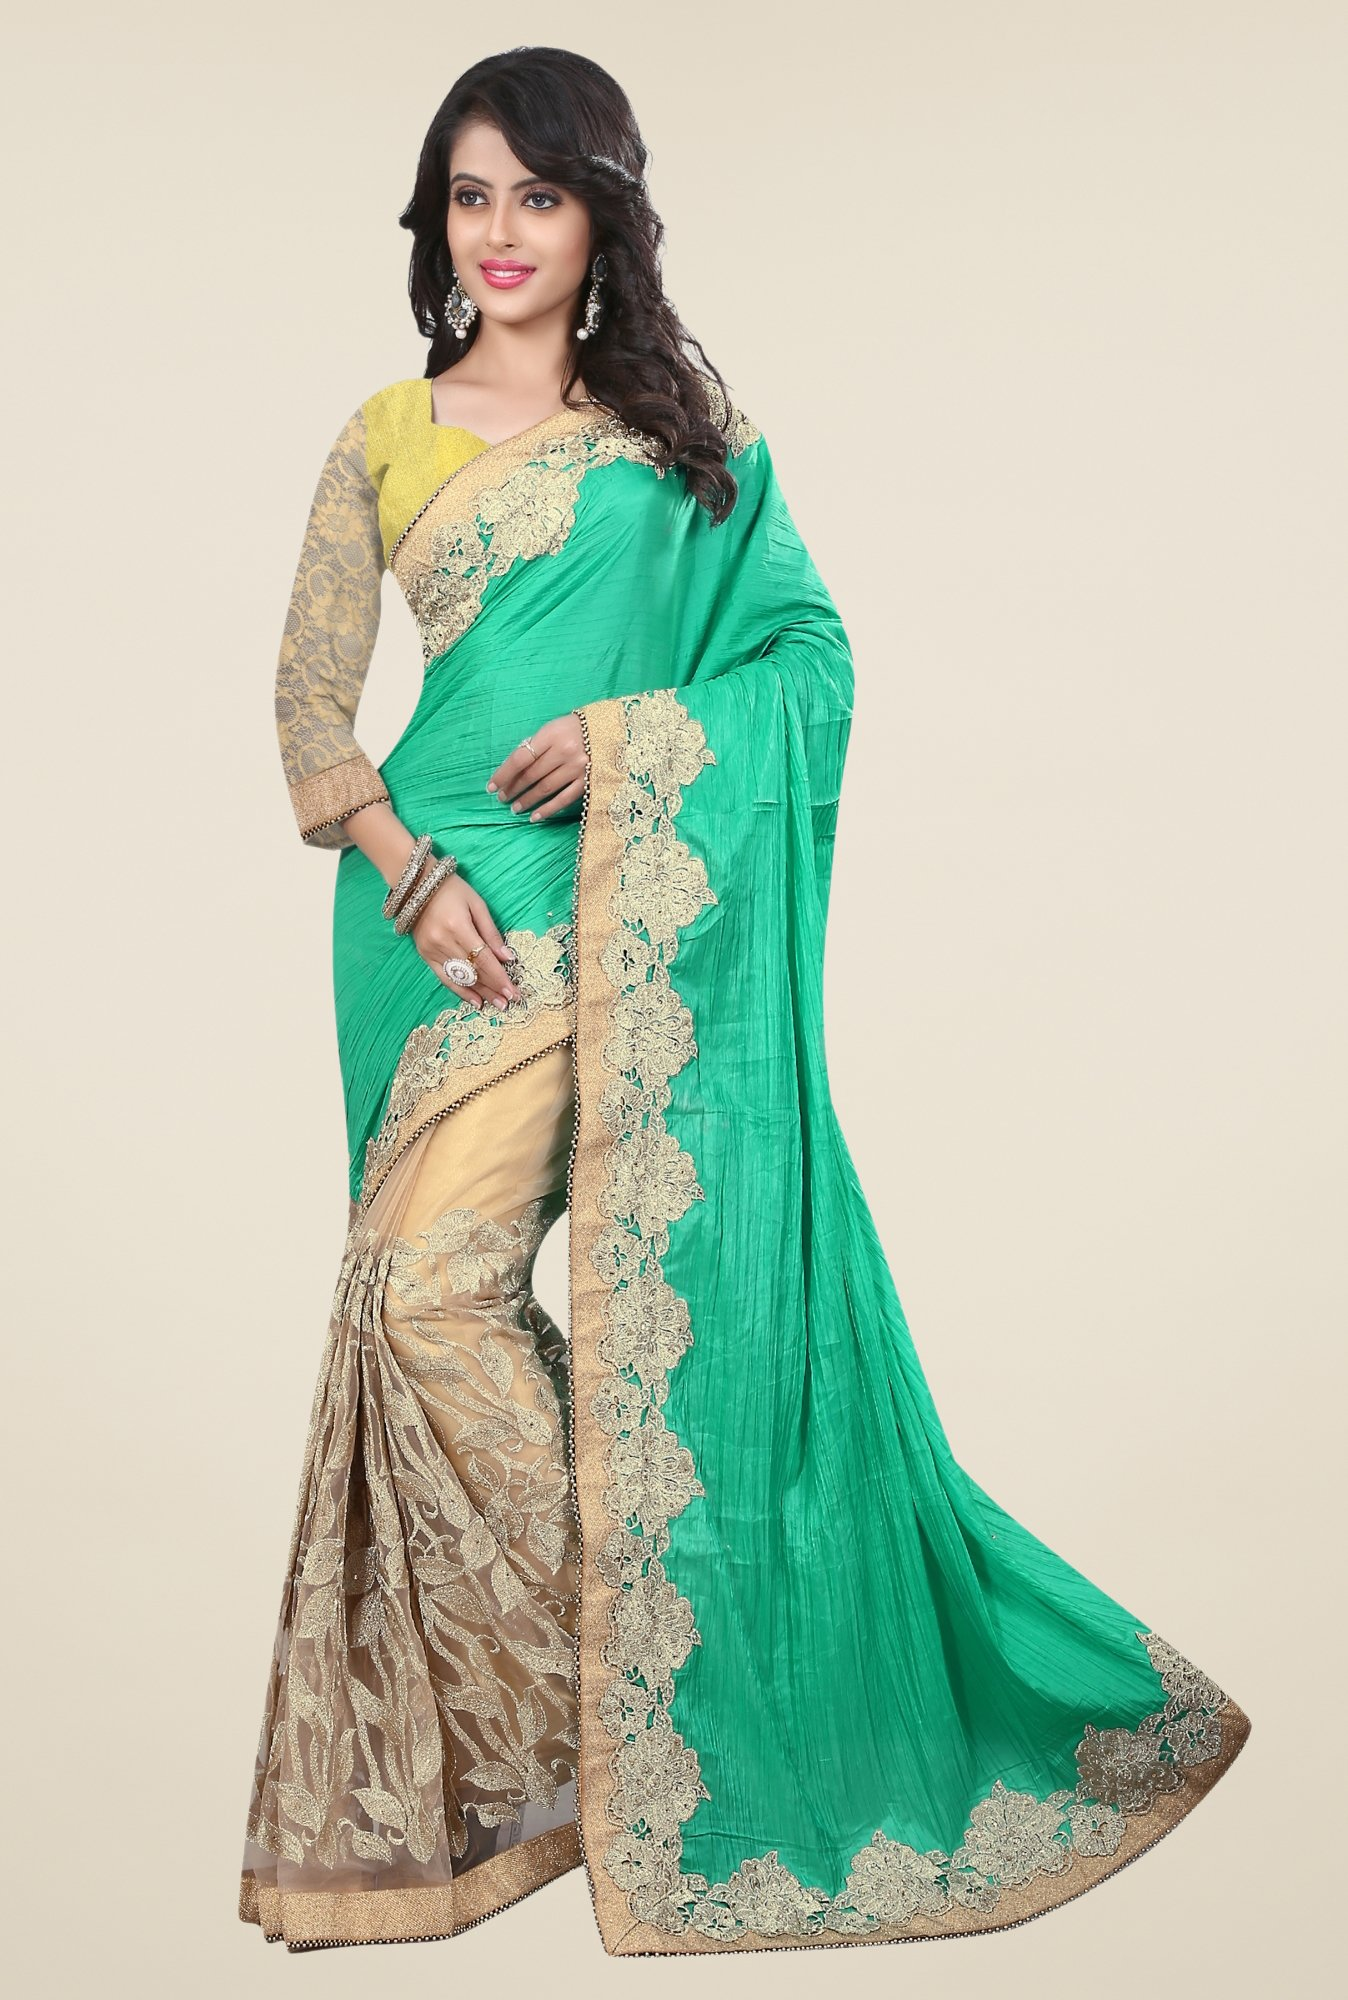 Triveni Beige & Green Embroidered Art Silk Net Saree